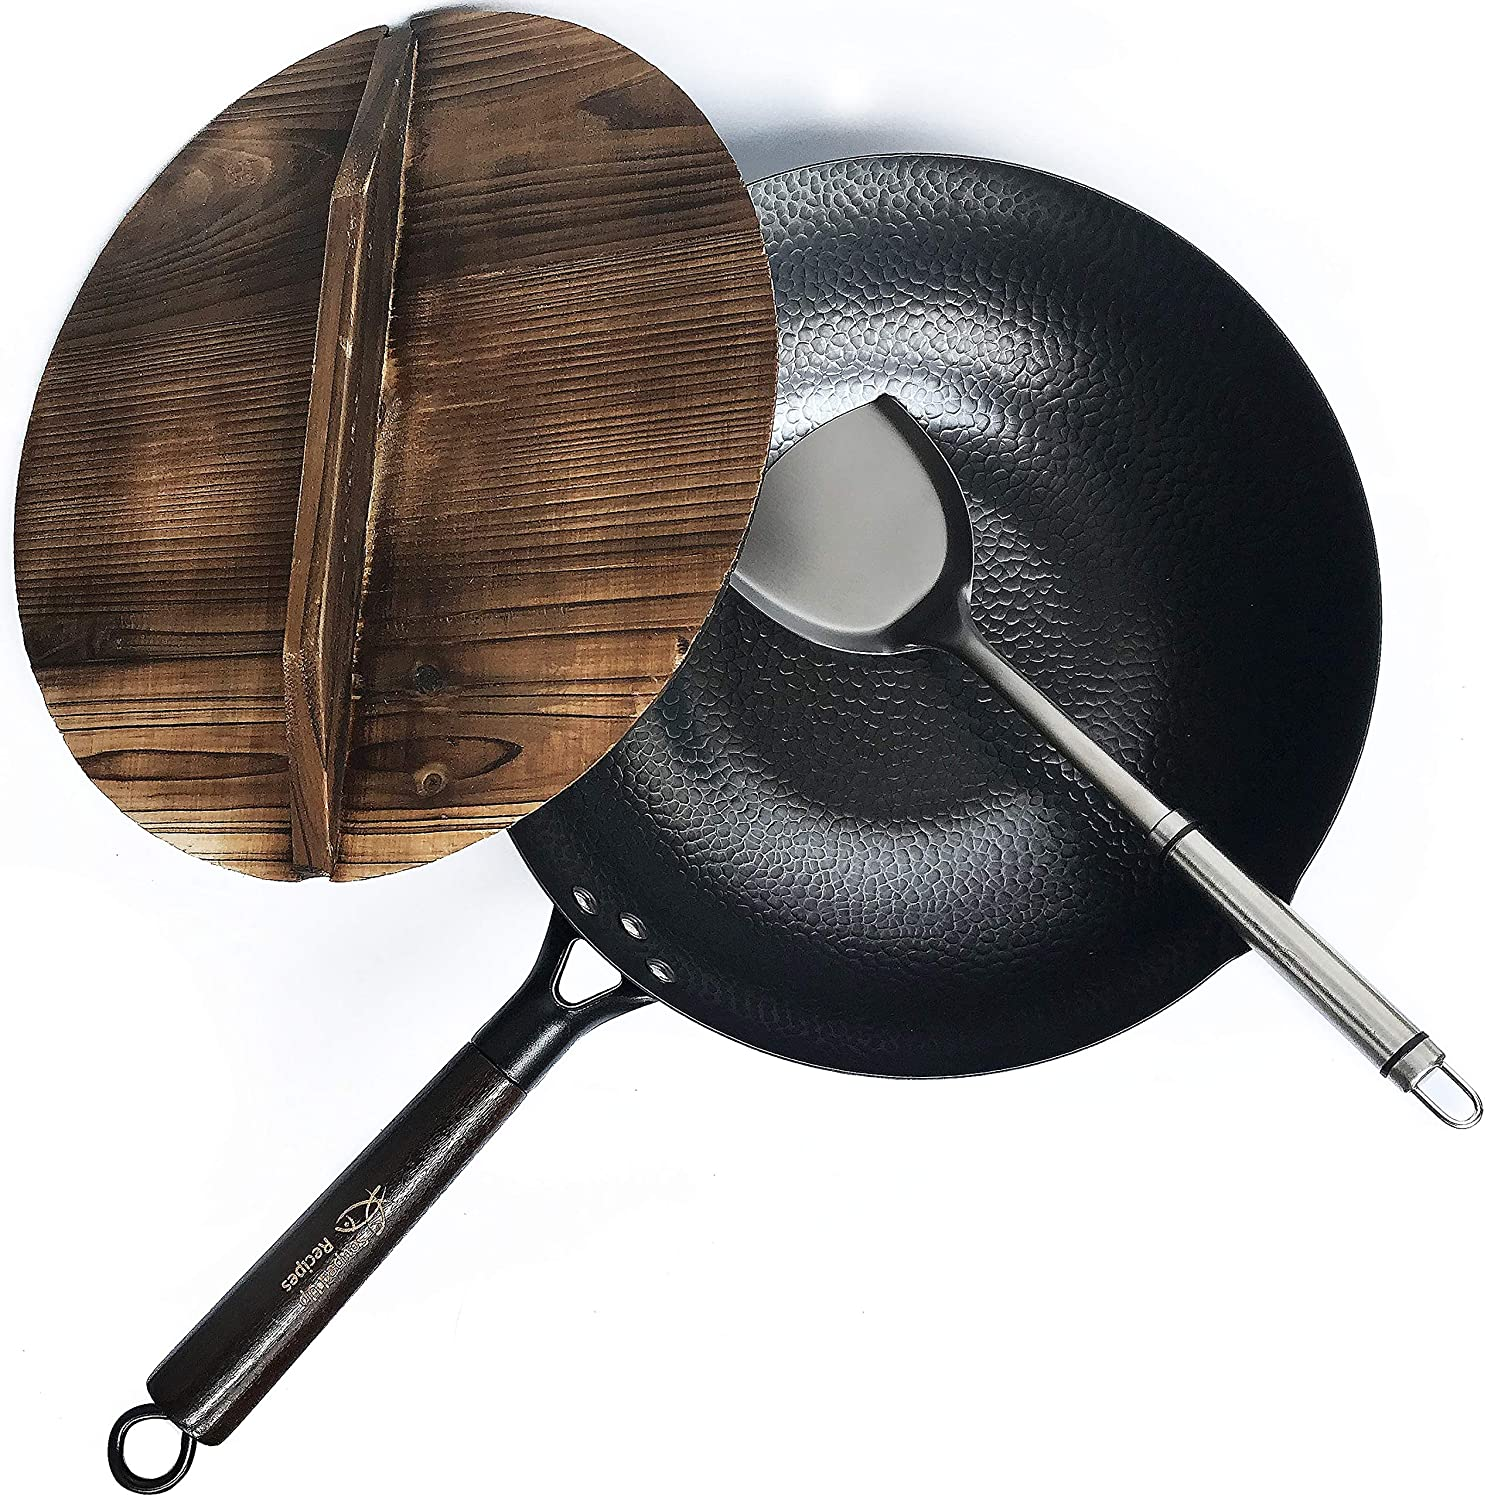 Souped Up Recipes - Flat Bottom Wok For Electric, Induction and Gas Stoves (Lid, Spatula and Seasoning Video Guide Included)